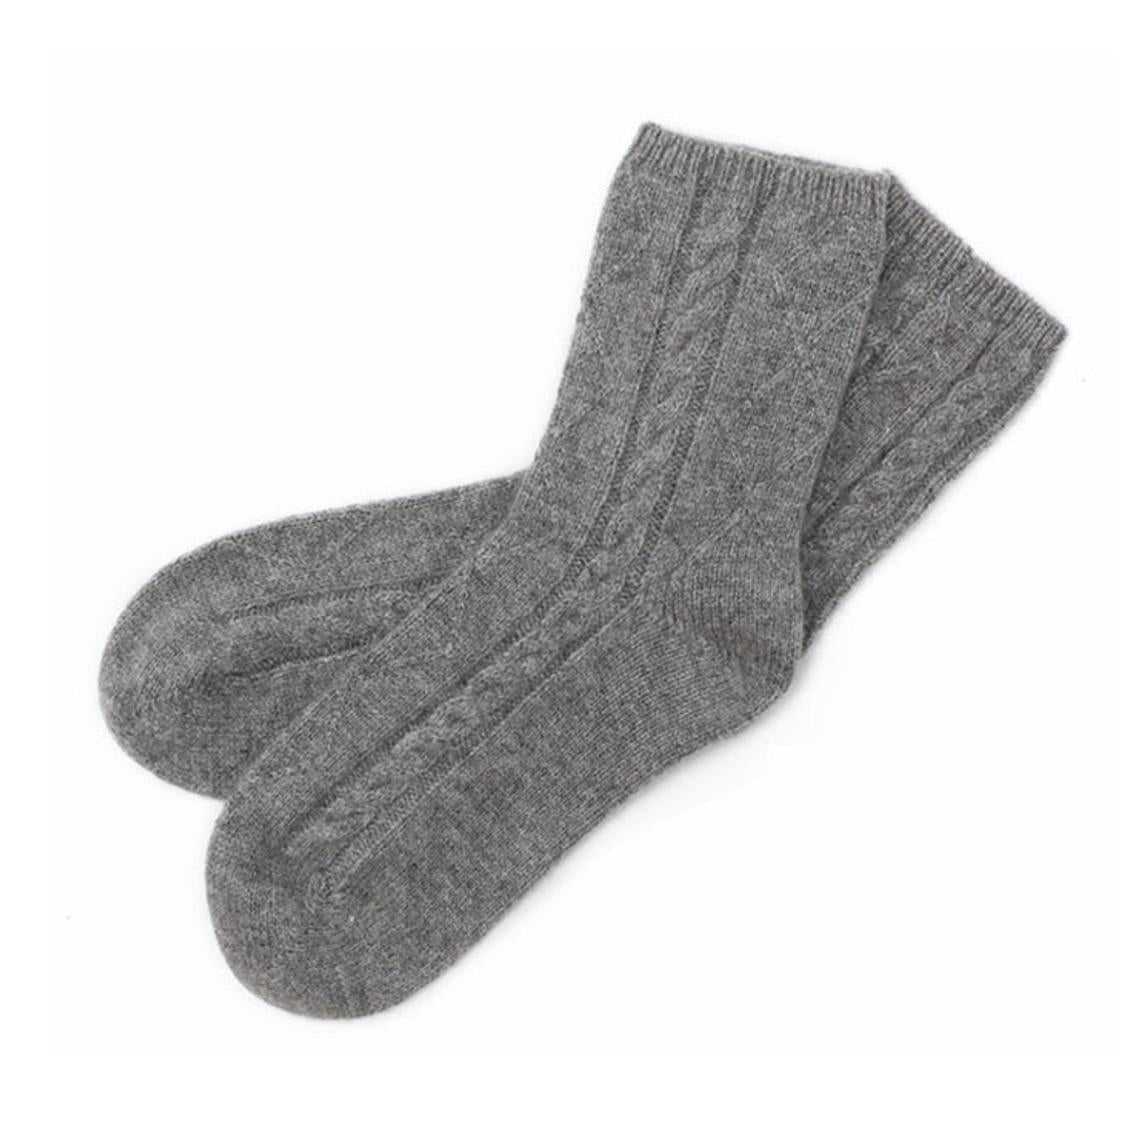 Cable Knit Cashmere Socks